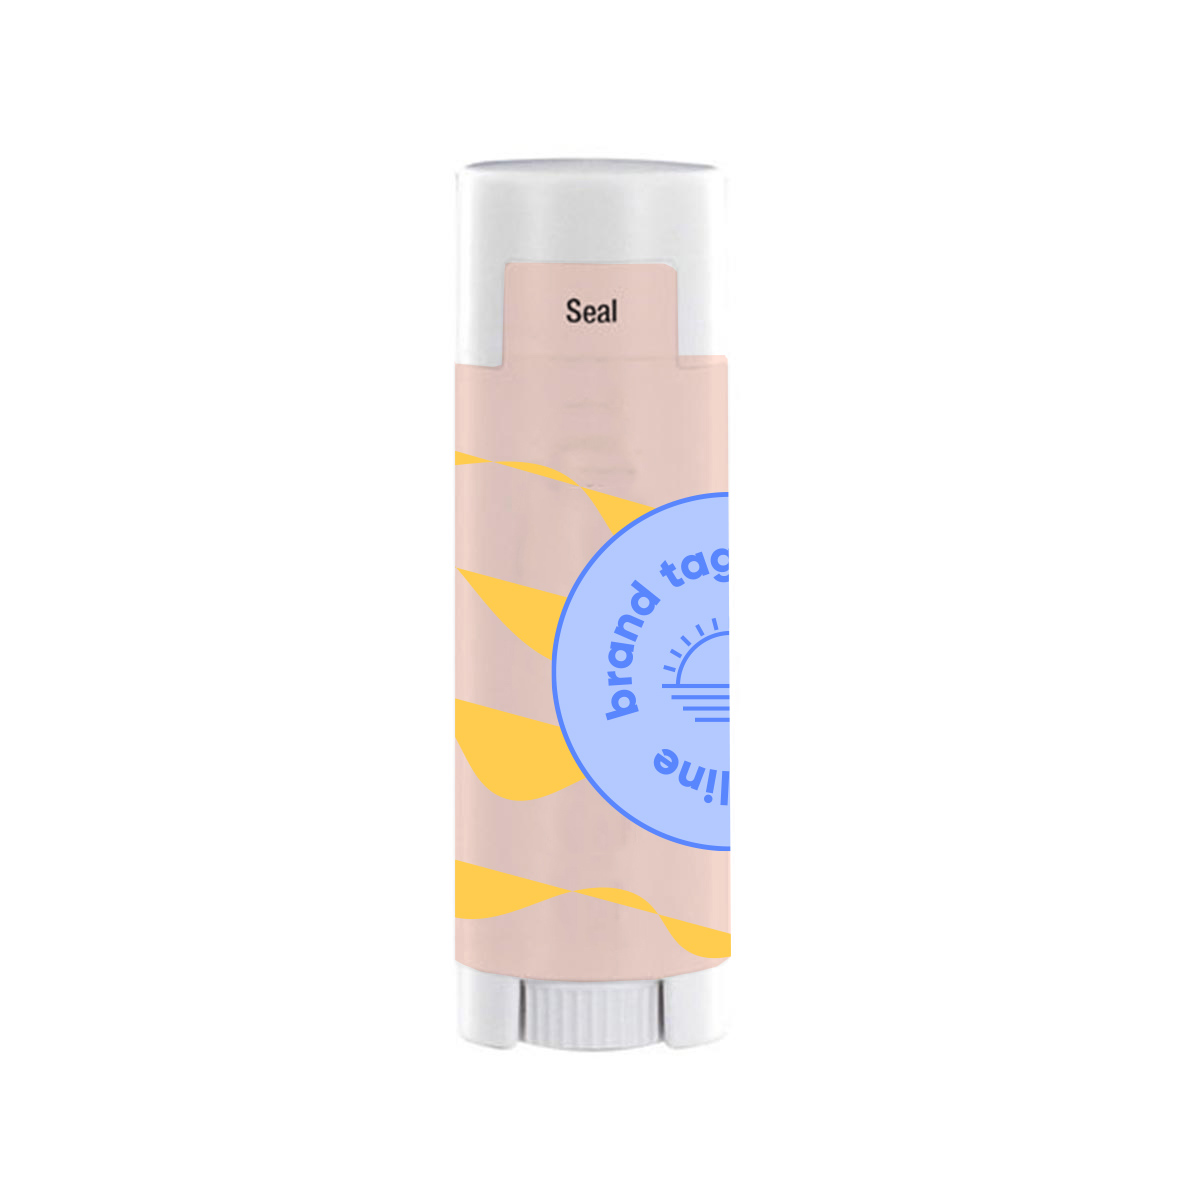 317634 spf 15 oval lip balm full color label